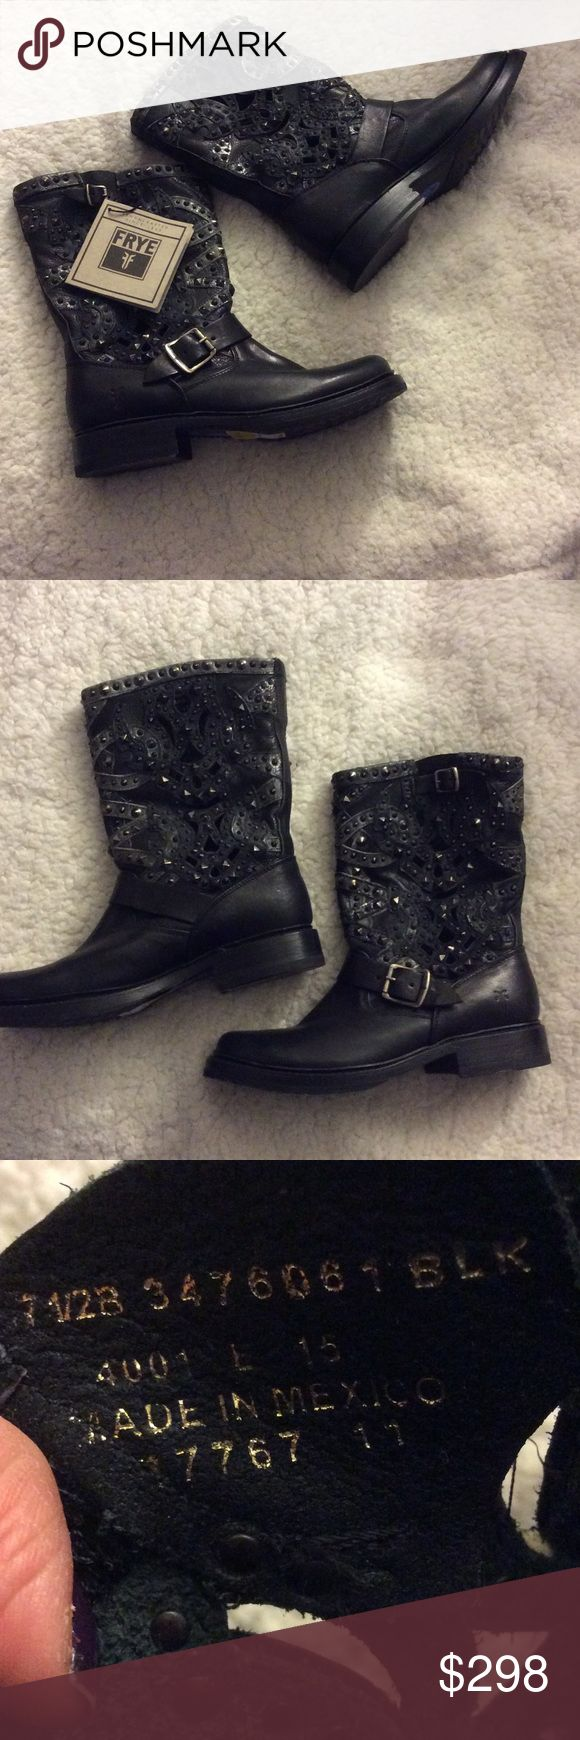 """NWT FRYE Studded Cutout Boot Black Size 7.5 NWT FRYE Studded Cutout Boot Black Size 7.5  Leather Throughout  Made in Mexico Shaft measures approximately 8""""from arch Heel measures approximately 1"""" Boot opening measures approximately 13"""" around. All gunmetal studs are intact. Frye Shoes Combat & Moto Boots"""